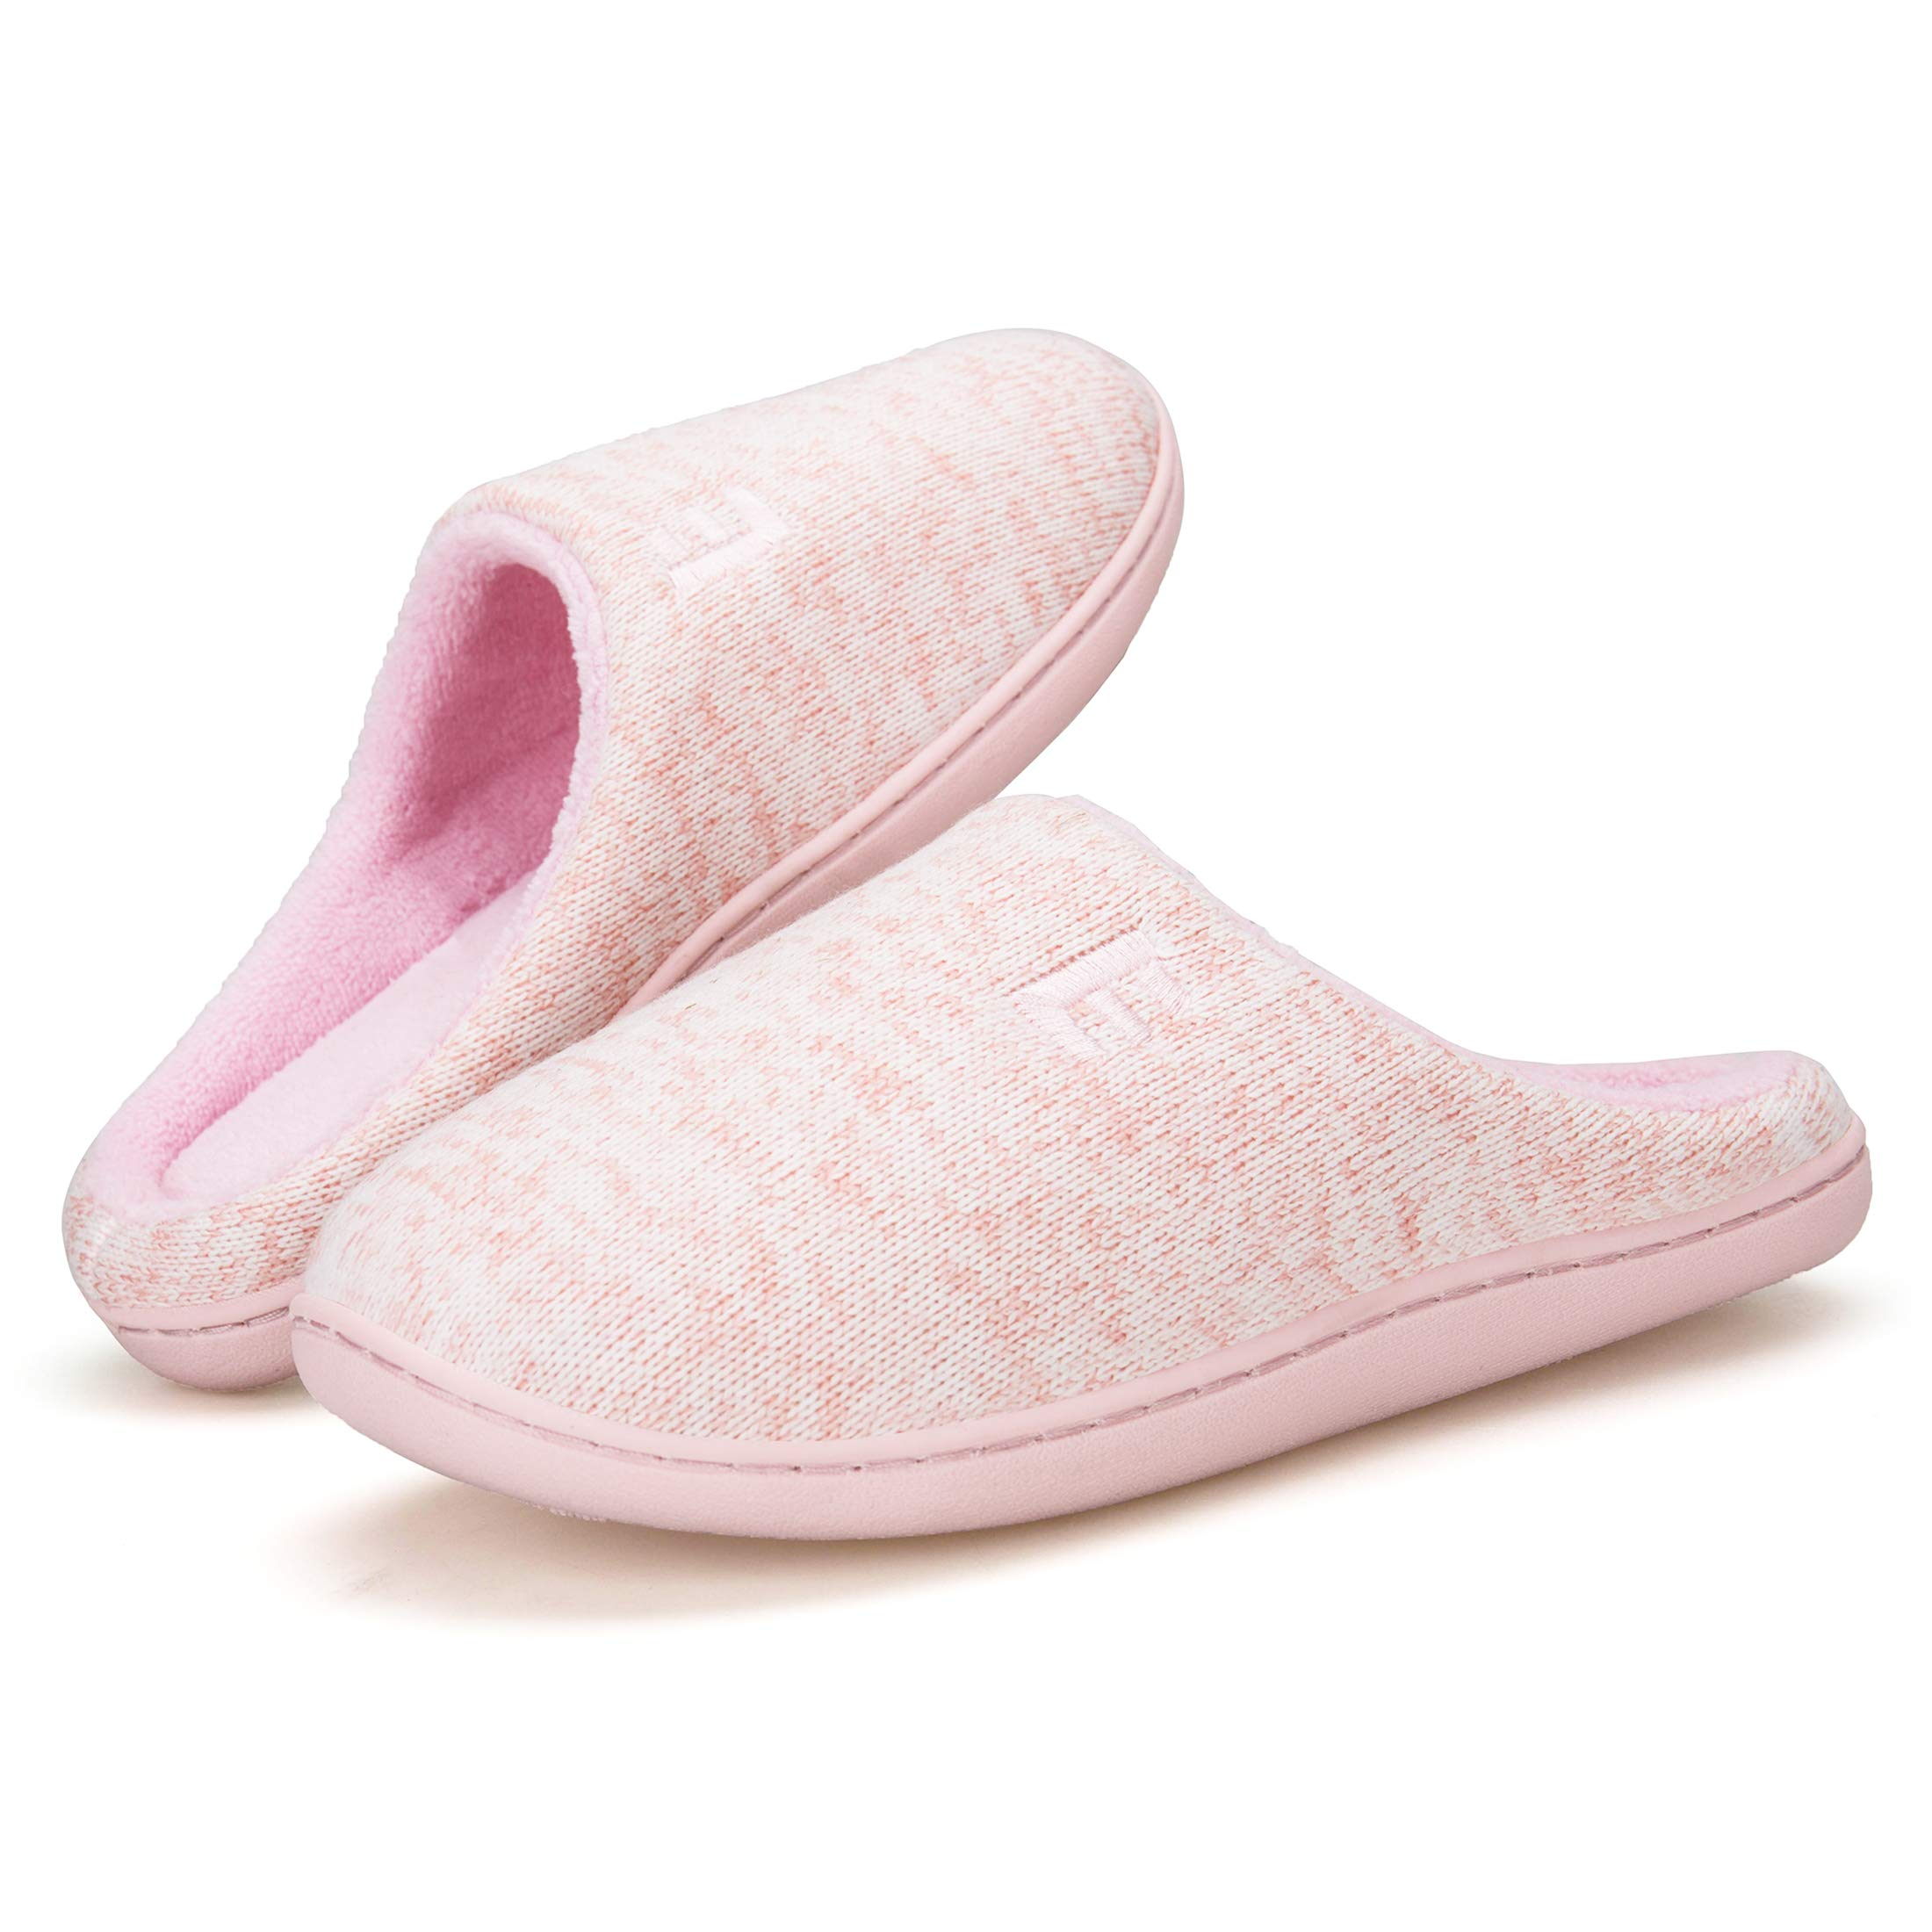 7100cb5a75e3 Men s and Women s Memory Foam House Slippers Soft Sole Anti-Slip Slippers  Indoor Shoes ELMT004